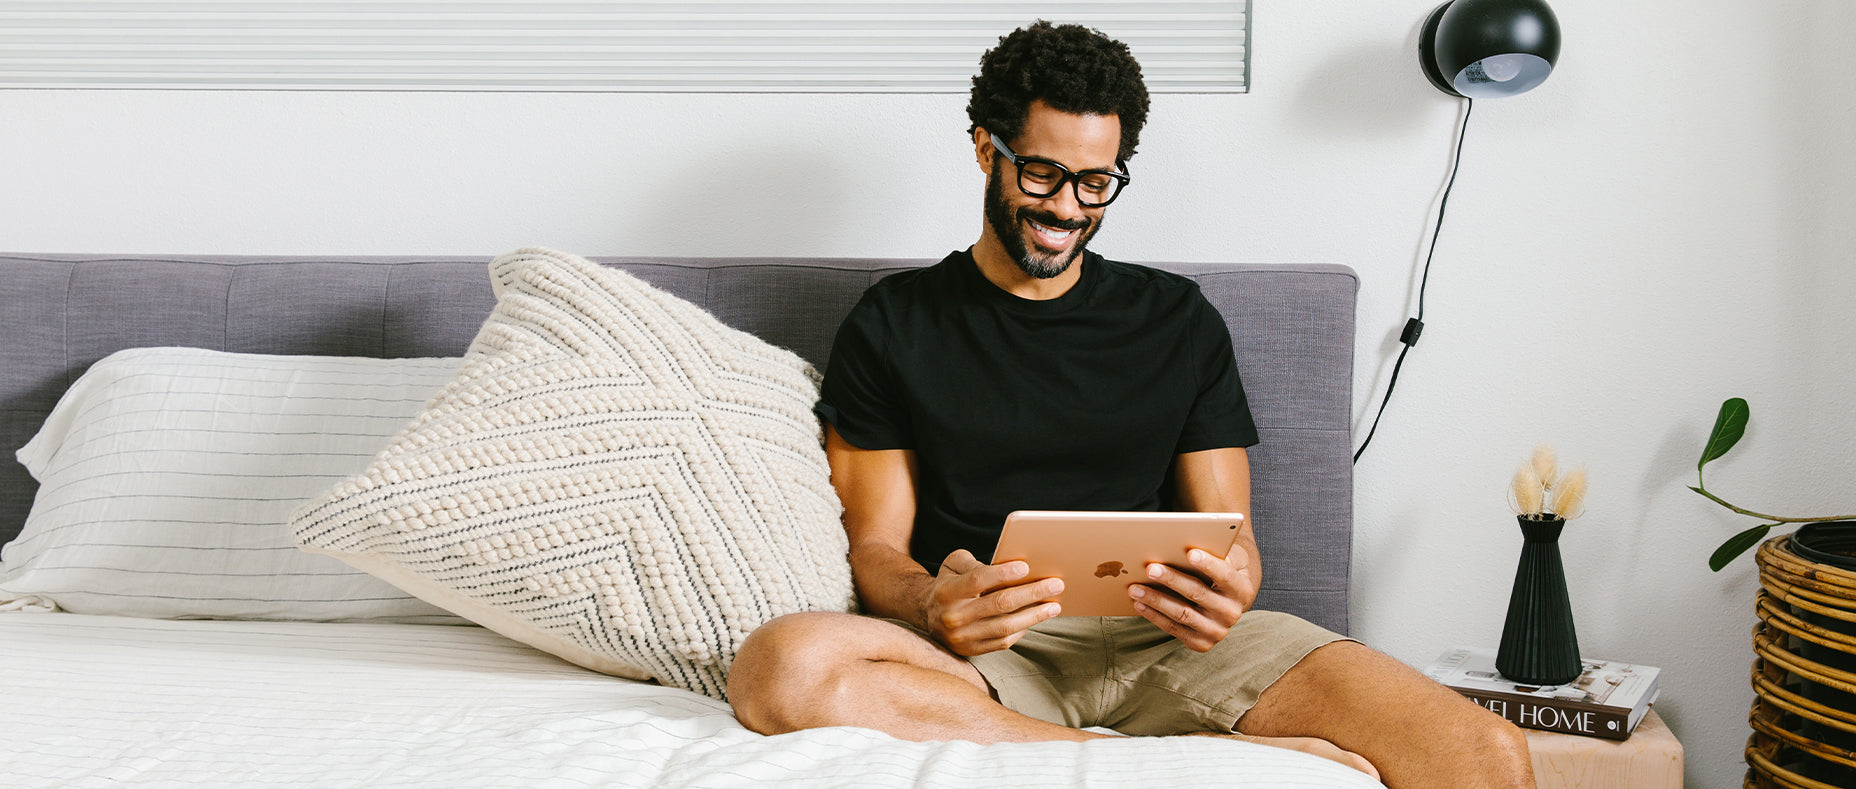 Man wearing Peepers reading glasses in bed while looking at a tablet